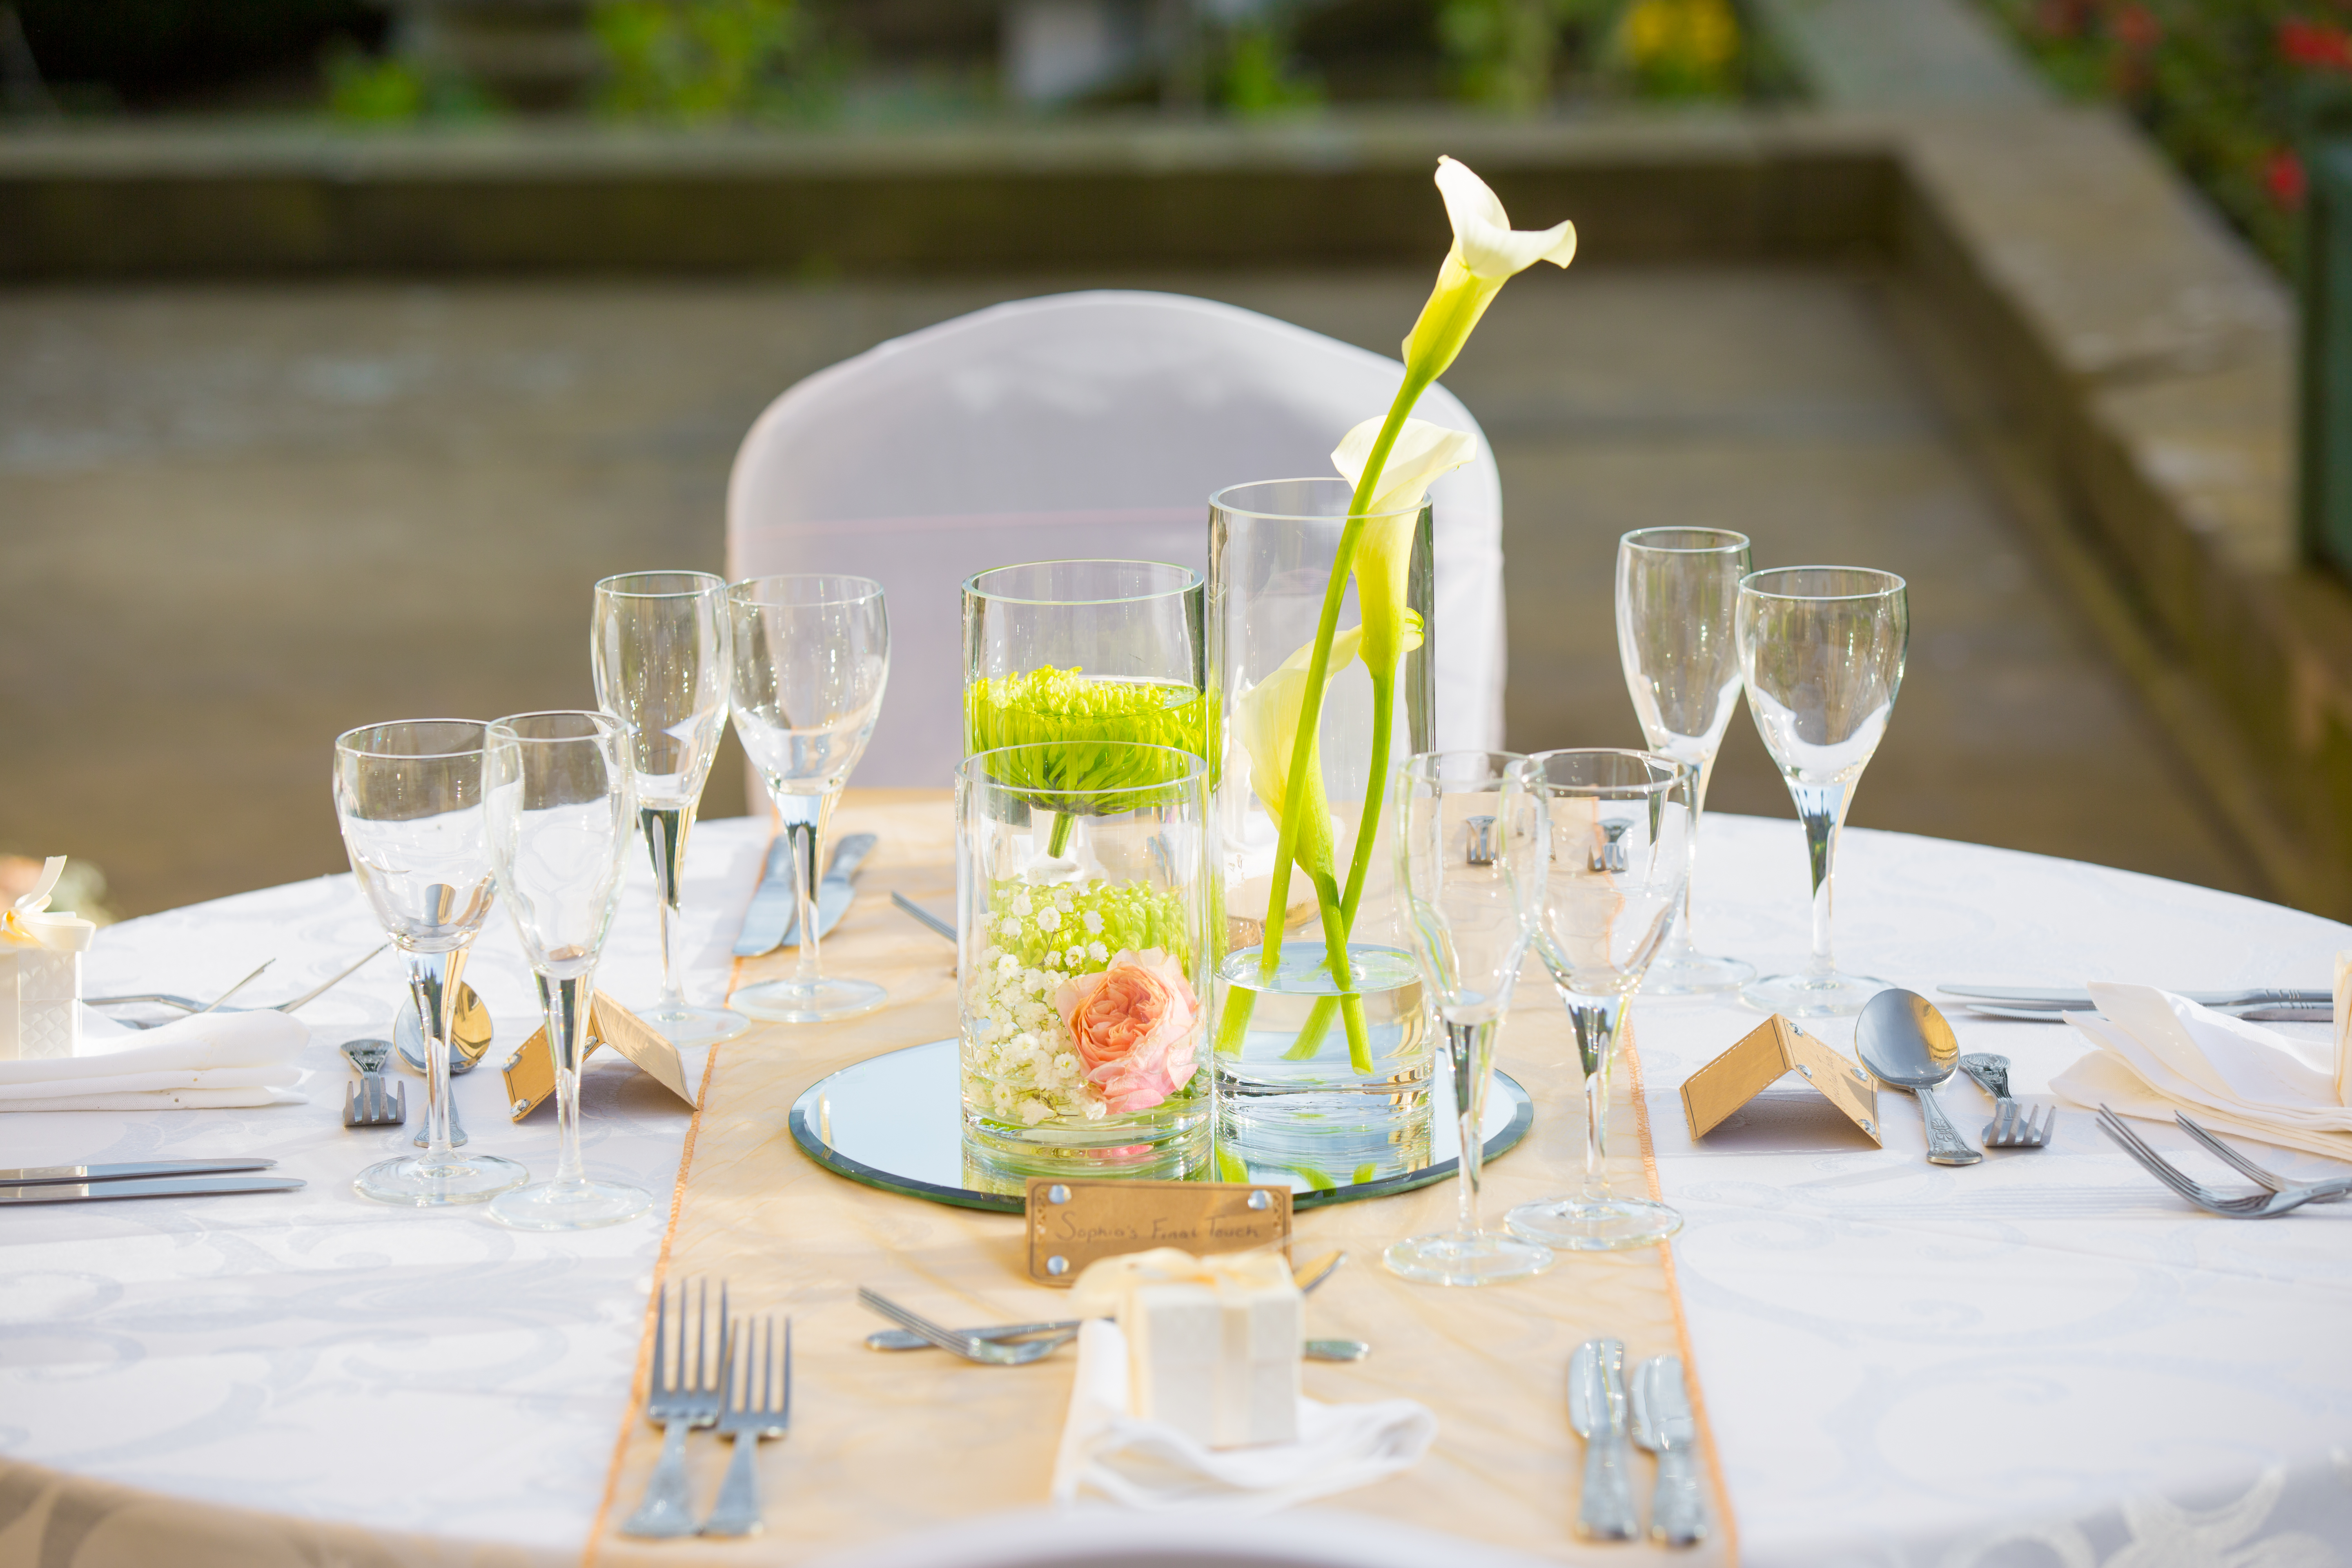 Cylinder Vases with Flowers Wortley Hall  - Sophia's Final Touch - Venue Styling - Weddings & Event Decoration